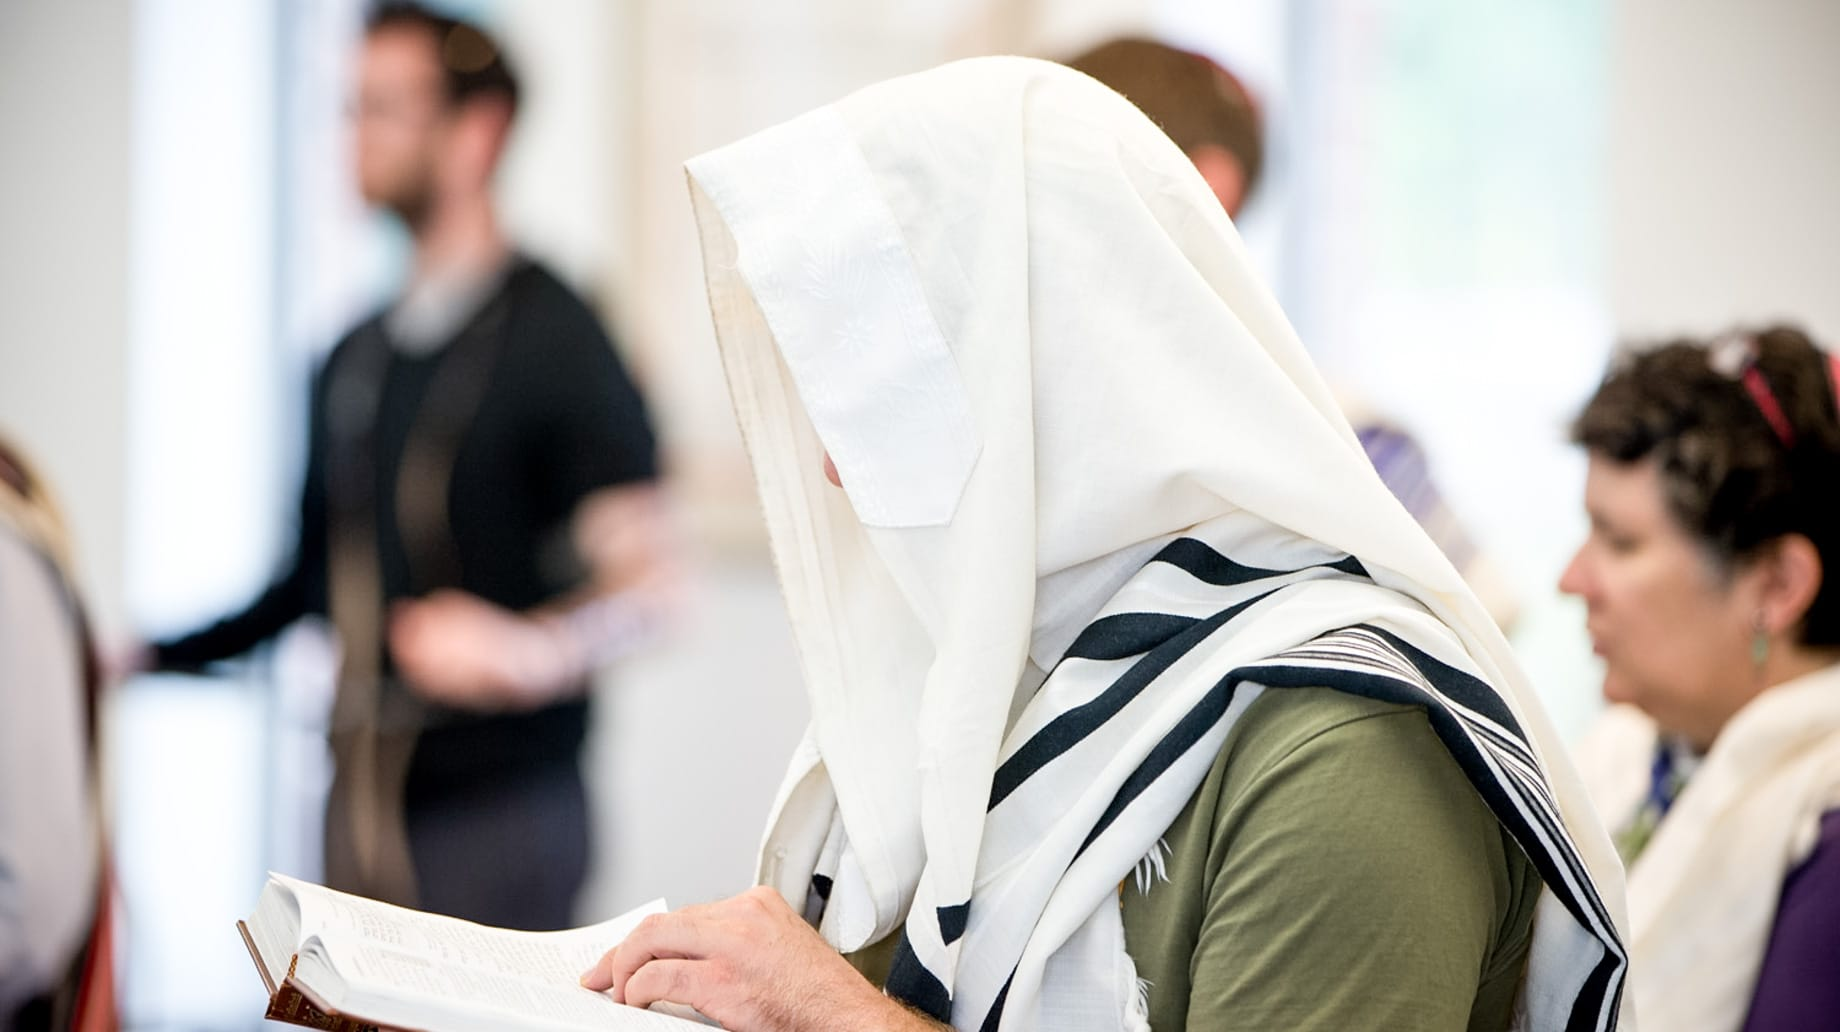 jewish woman with a head scarf